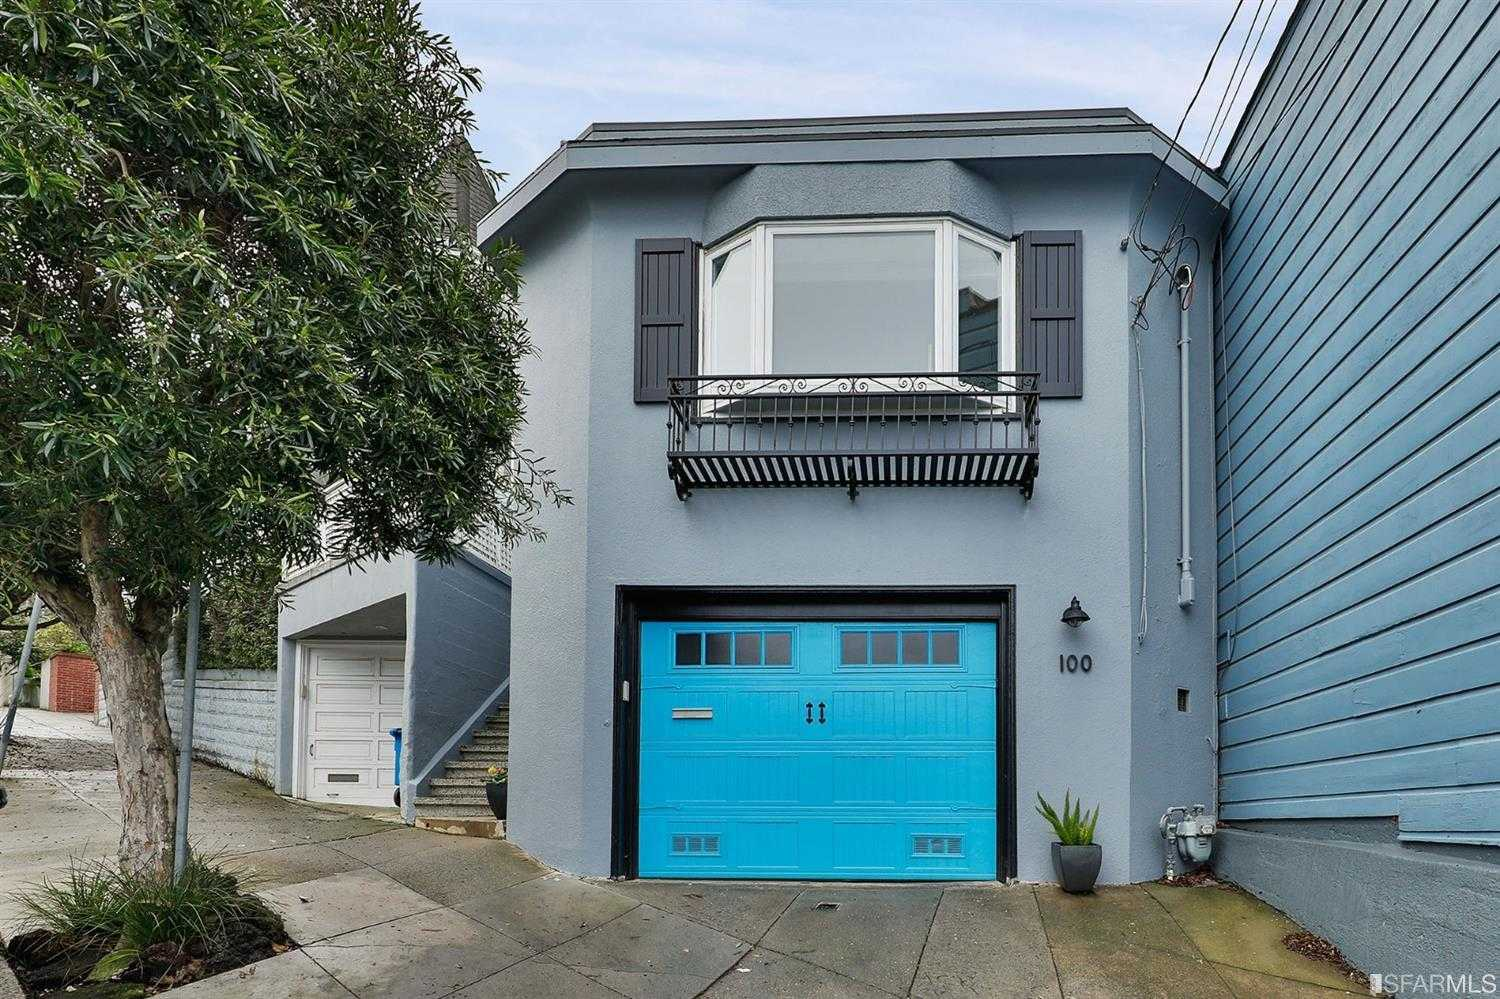 $1,675,000 - 2Br/1Ba -  for Sale in San Francisco